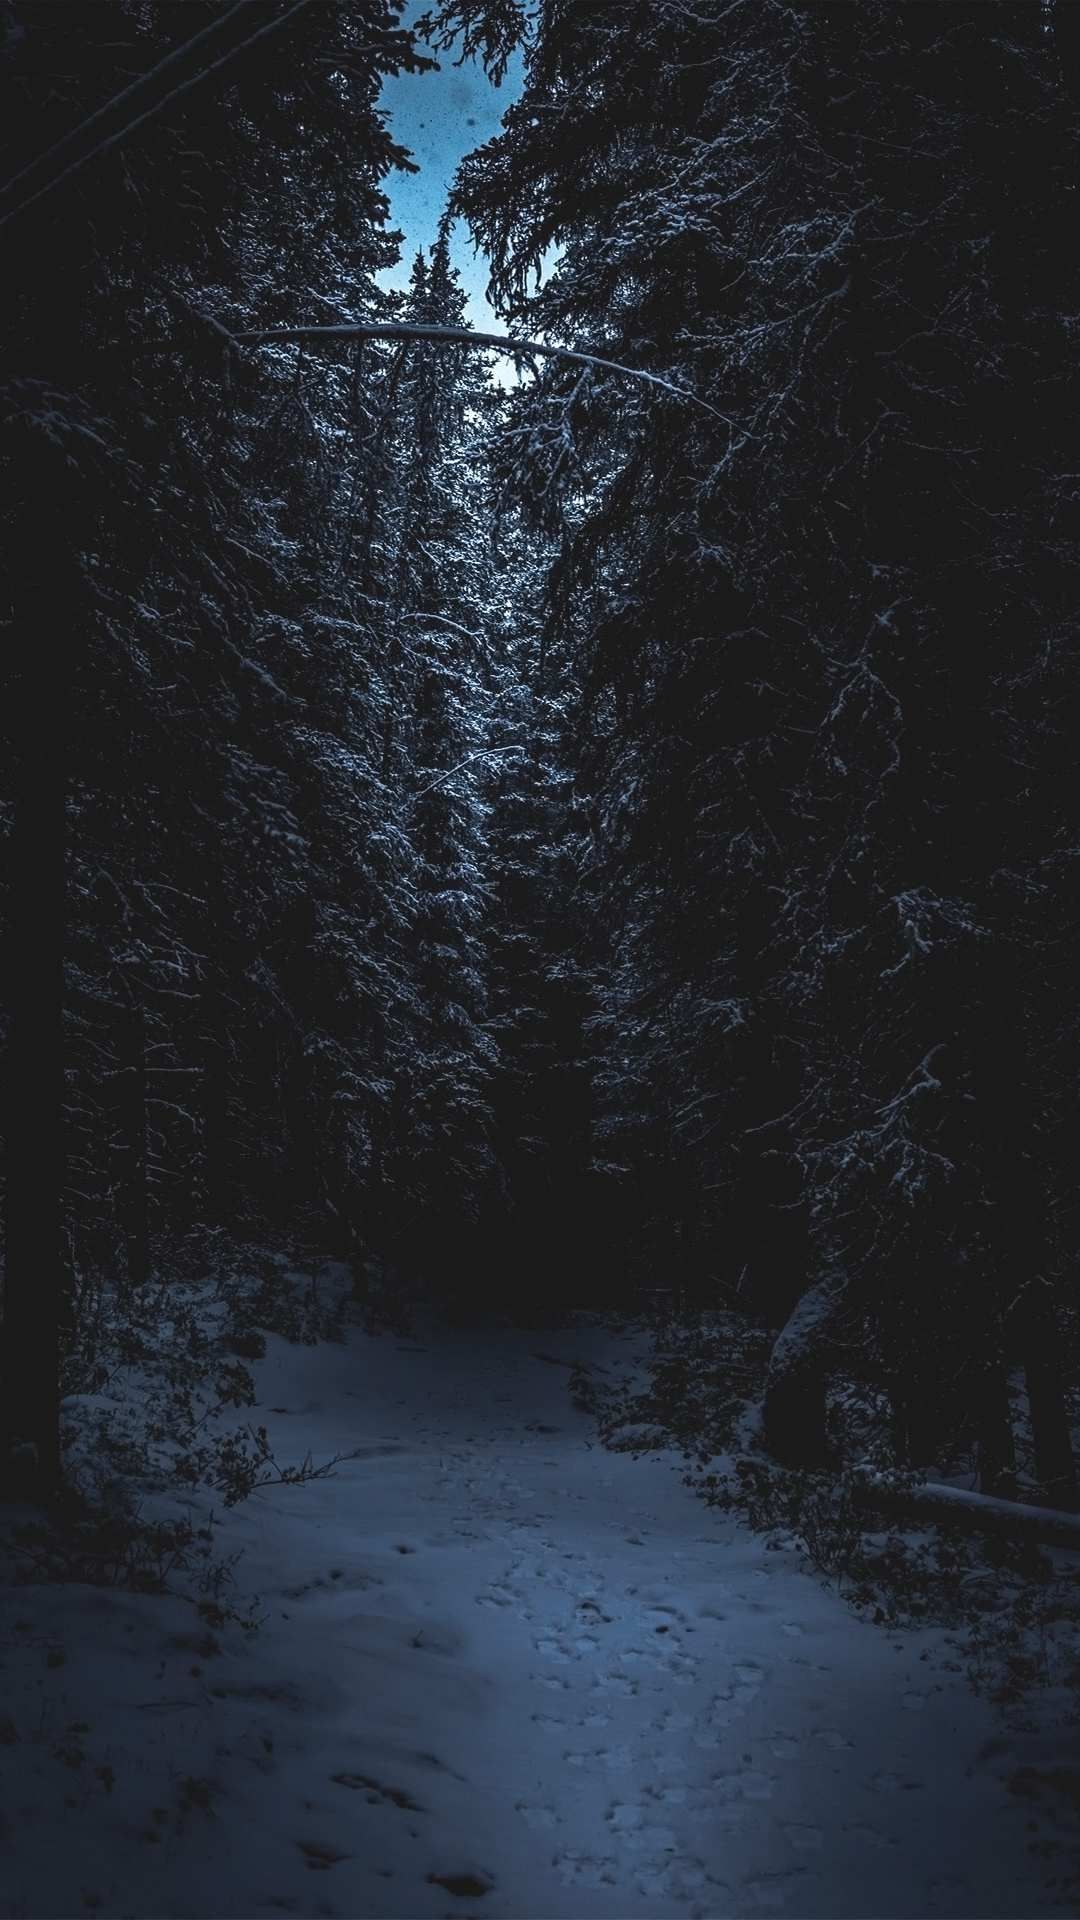 Dark Snowy Forest Iphone Wallpaper Babangrichie Org